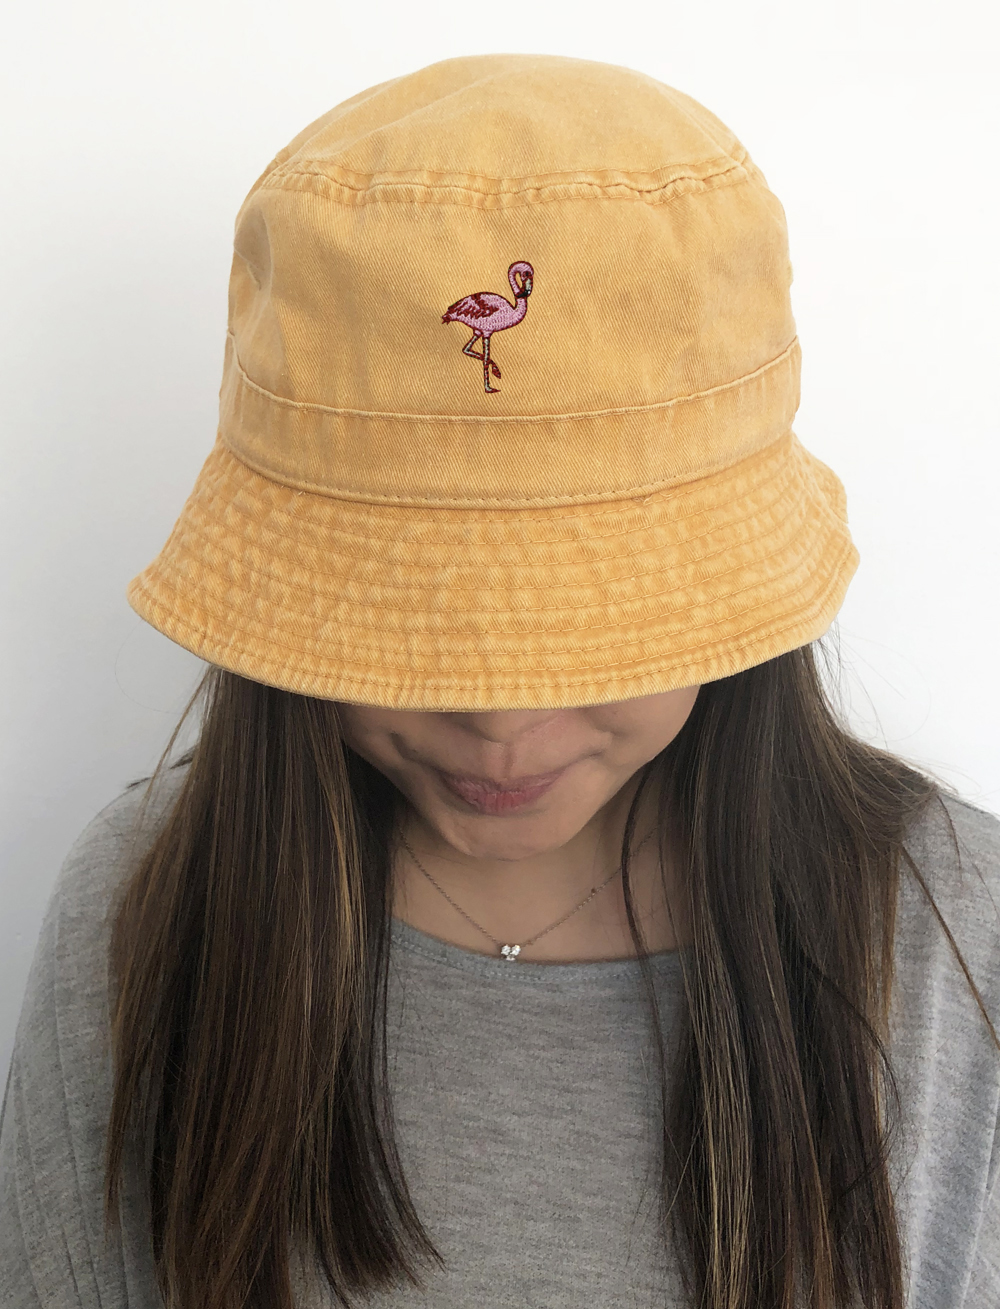 b2add15663e City Hunter Bd2020 Flamingo Washed Cotton Bucket Hats - 13 Colors (Washed  Gold) - Walmart.com